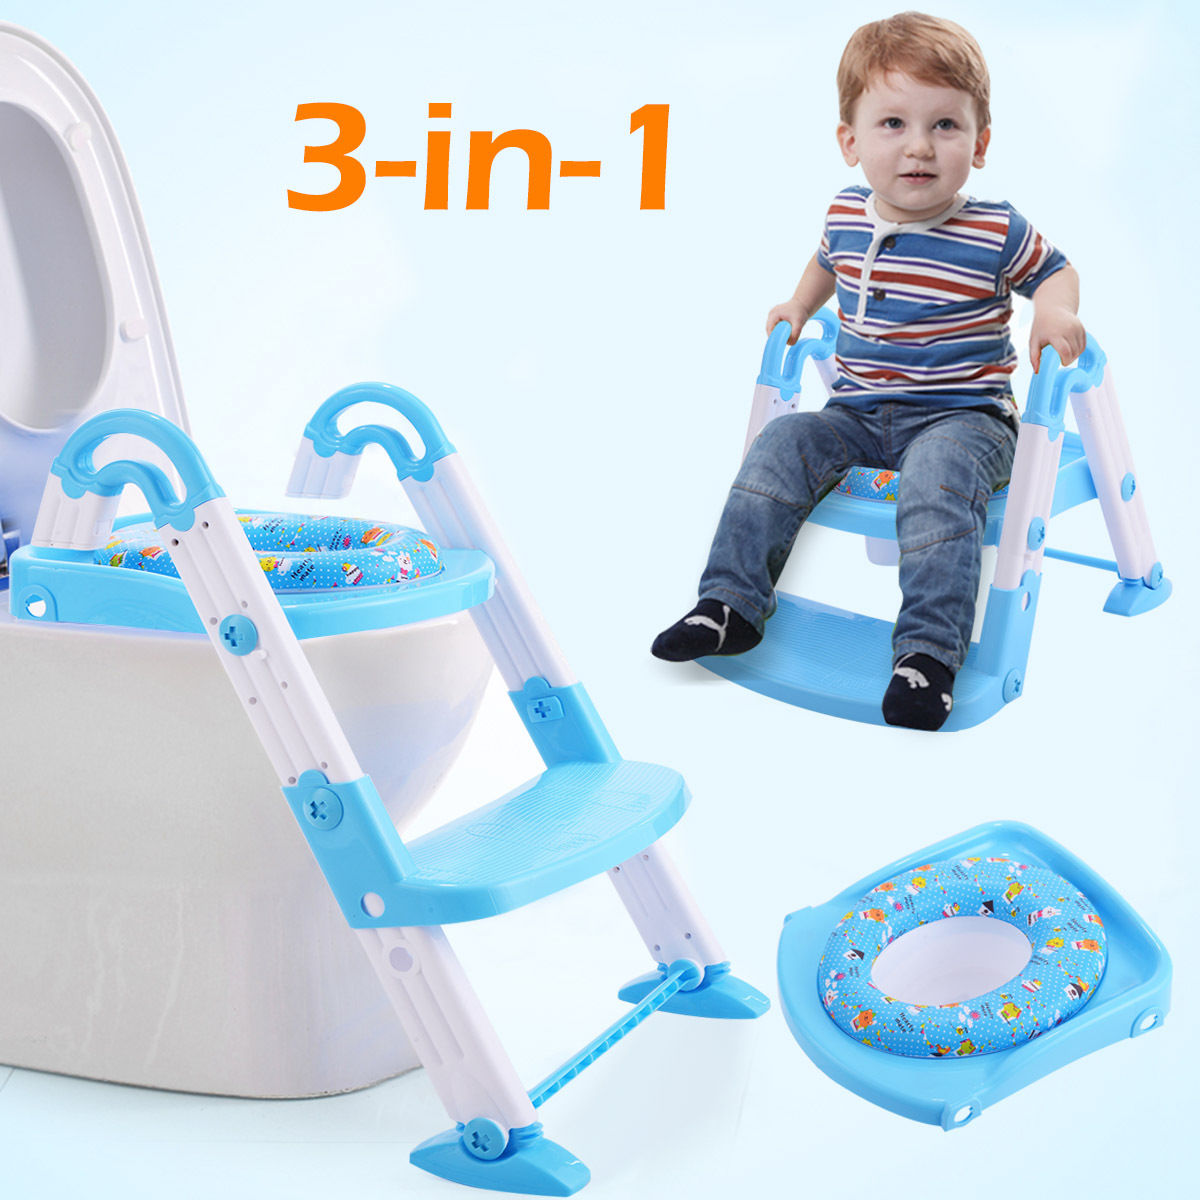 Costway 3 in 1 Baby Potty Training Toilet Chair Seat Step Ladder Trainer Toddler Blue by Costway